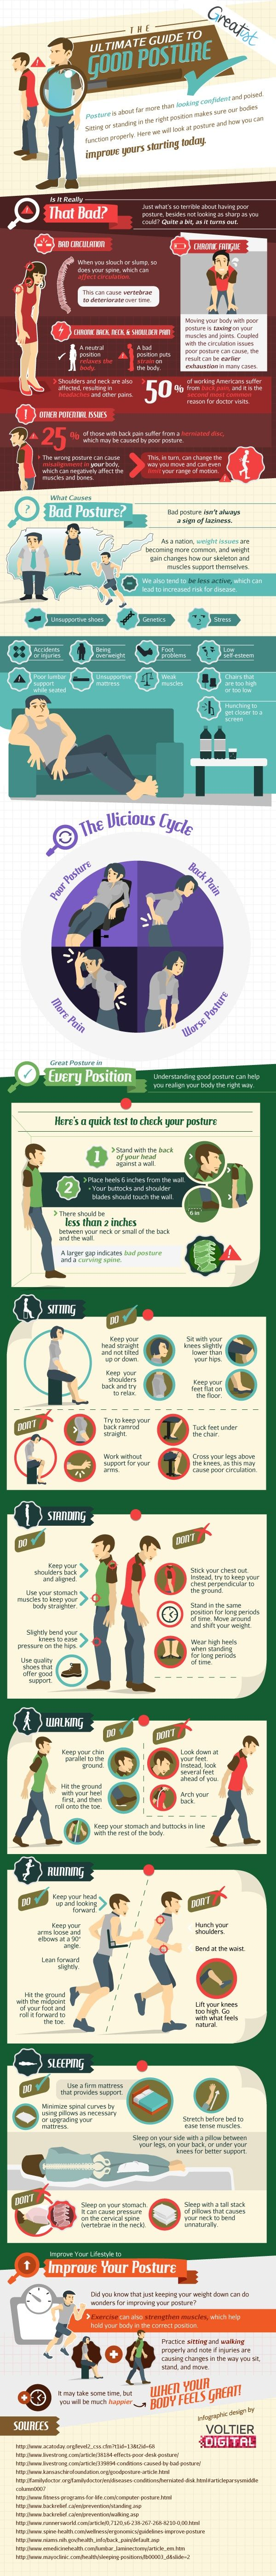 The Ultimate Guide To Good Posture  Exercises Chiropractic Care